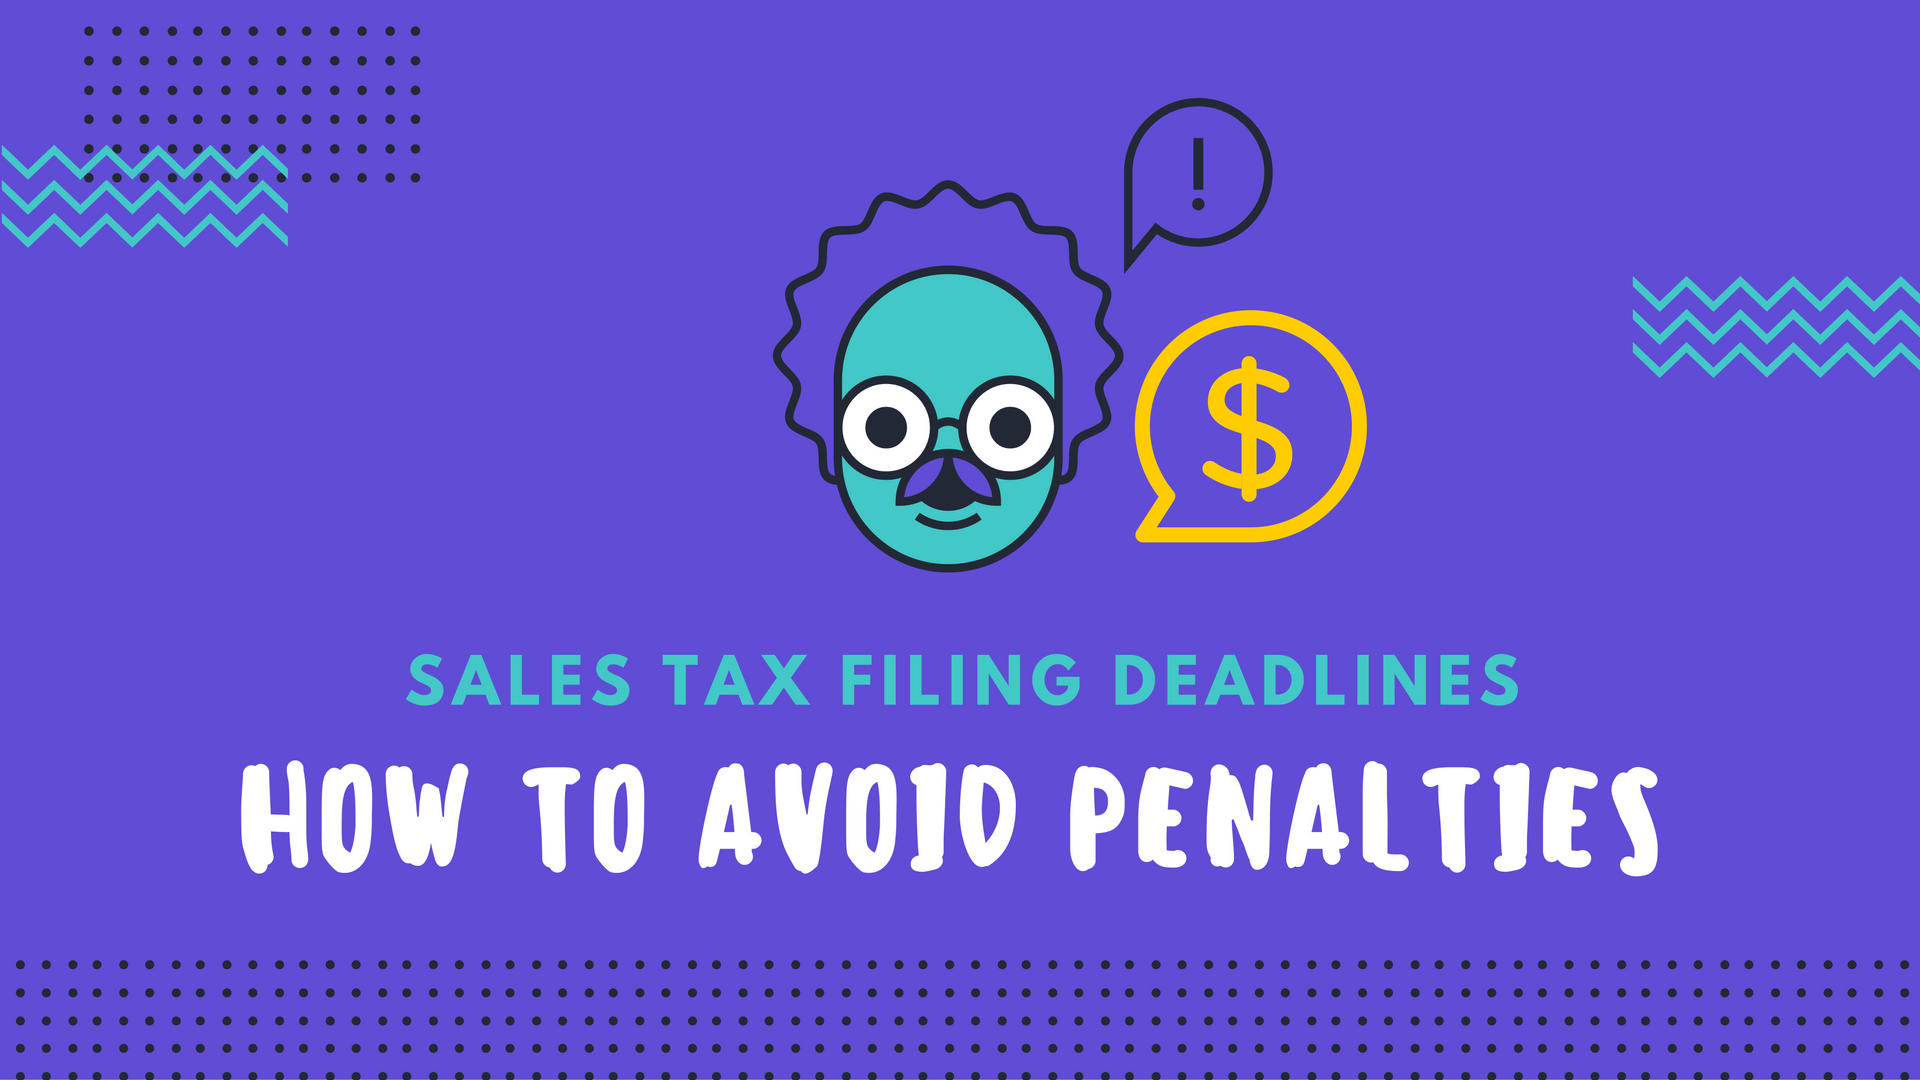 sales tax deadlines - how to avoid penalties